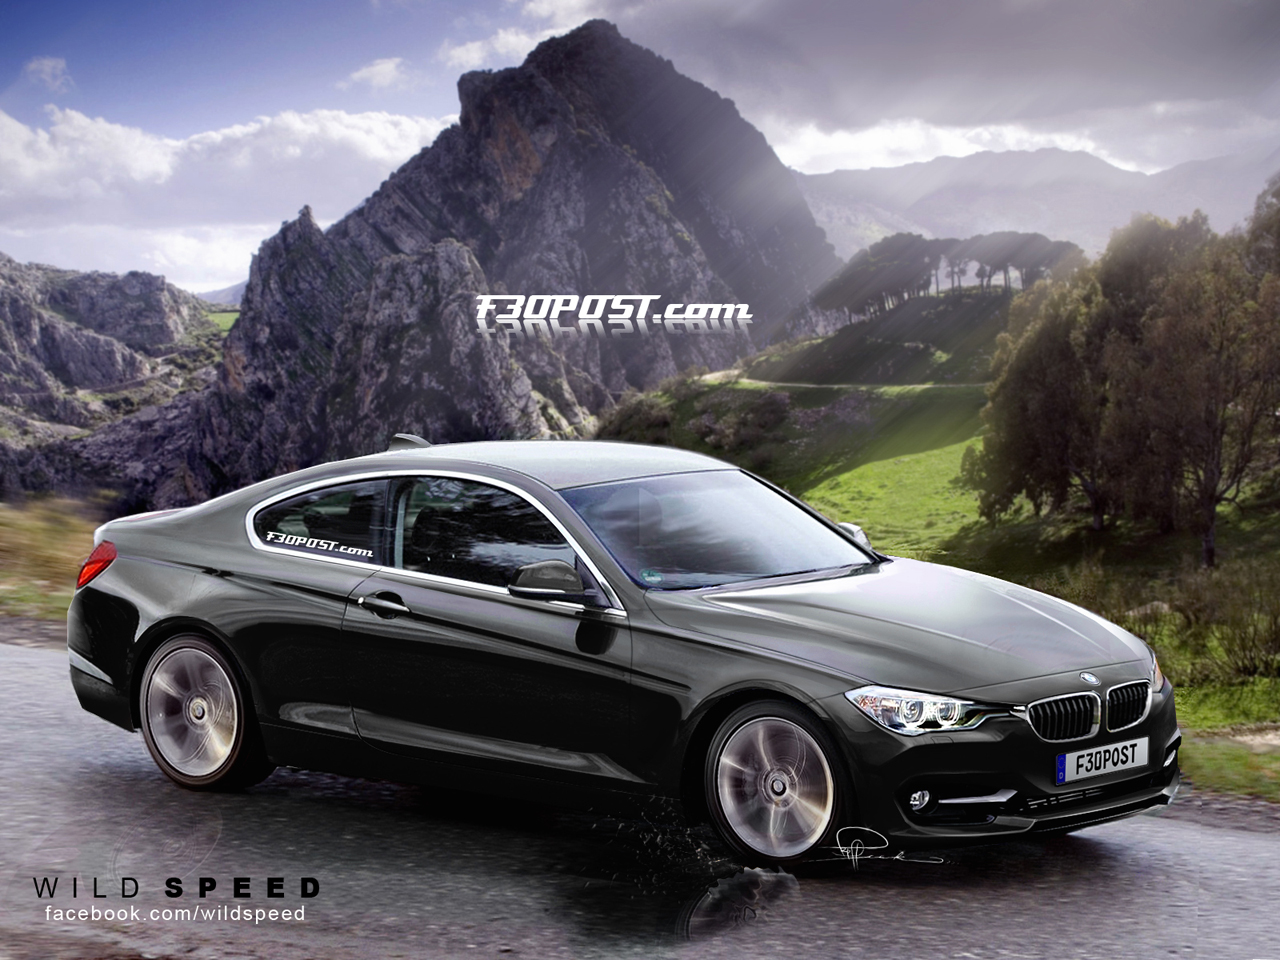 2012 BMW 3 Series Coupe rendering